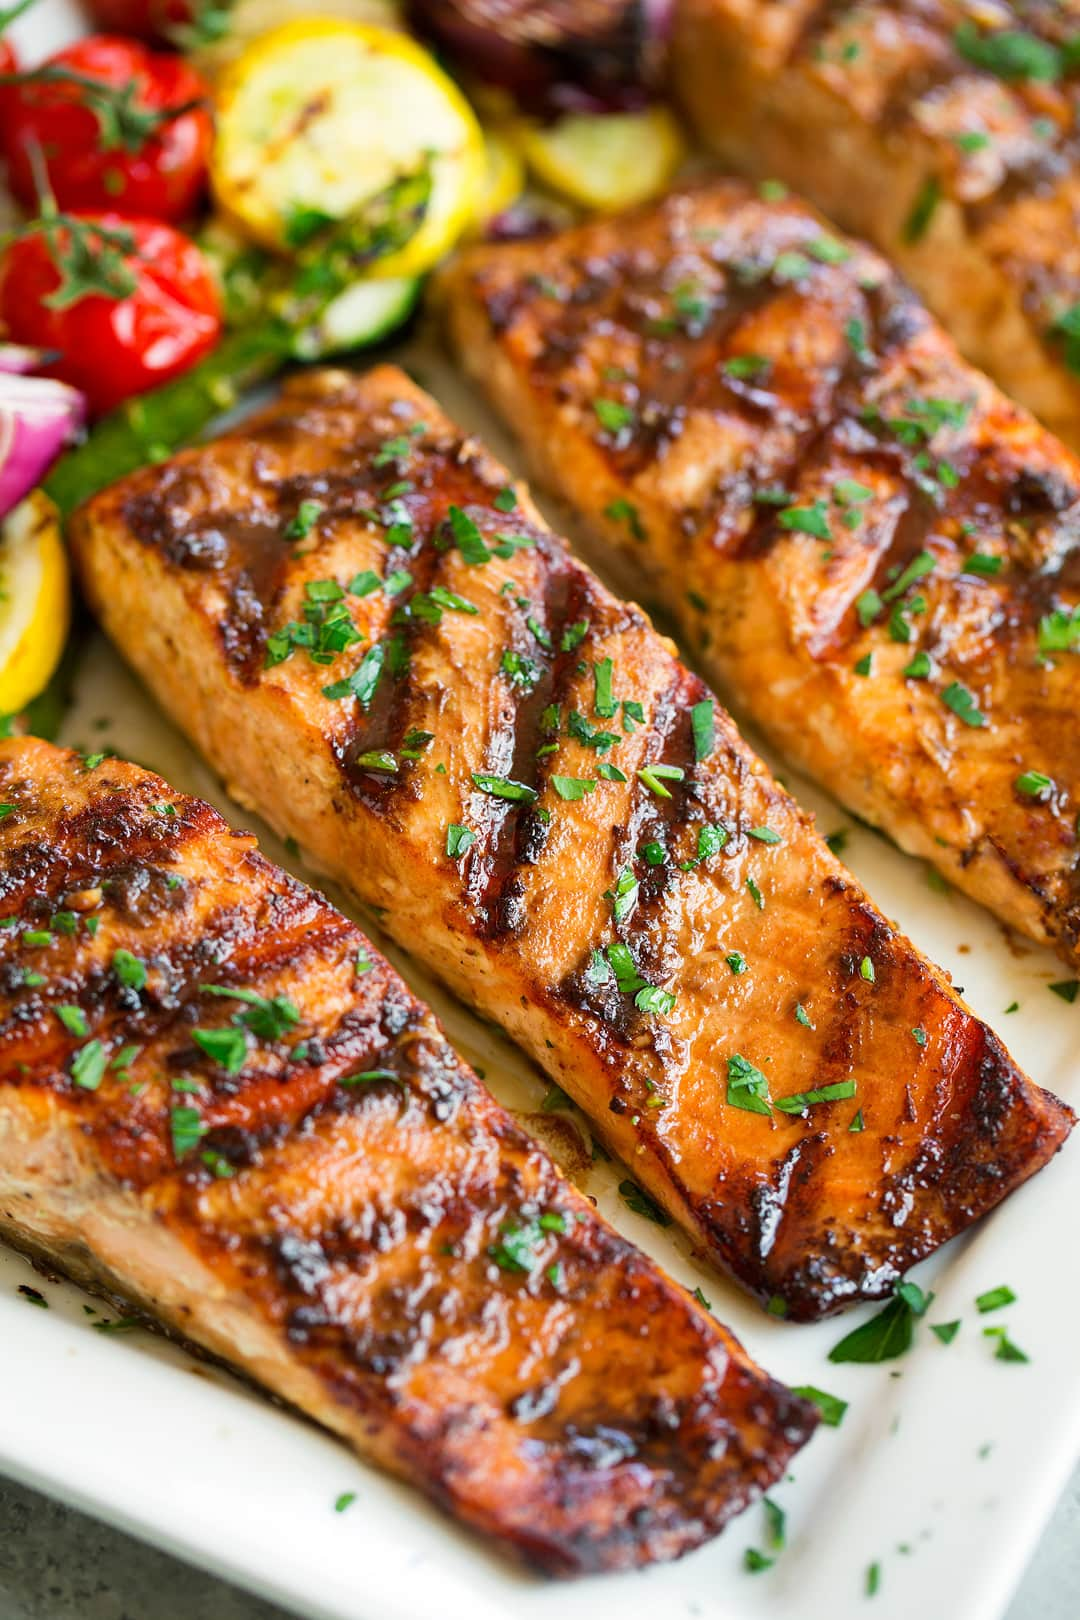 three grilled salmon fillets on white platter